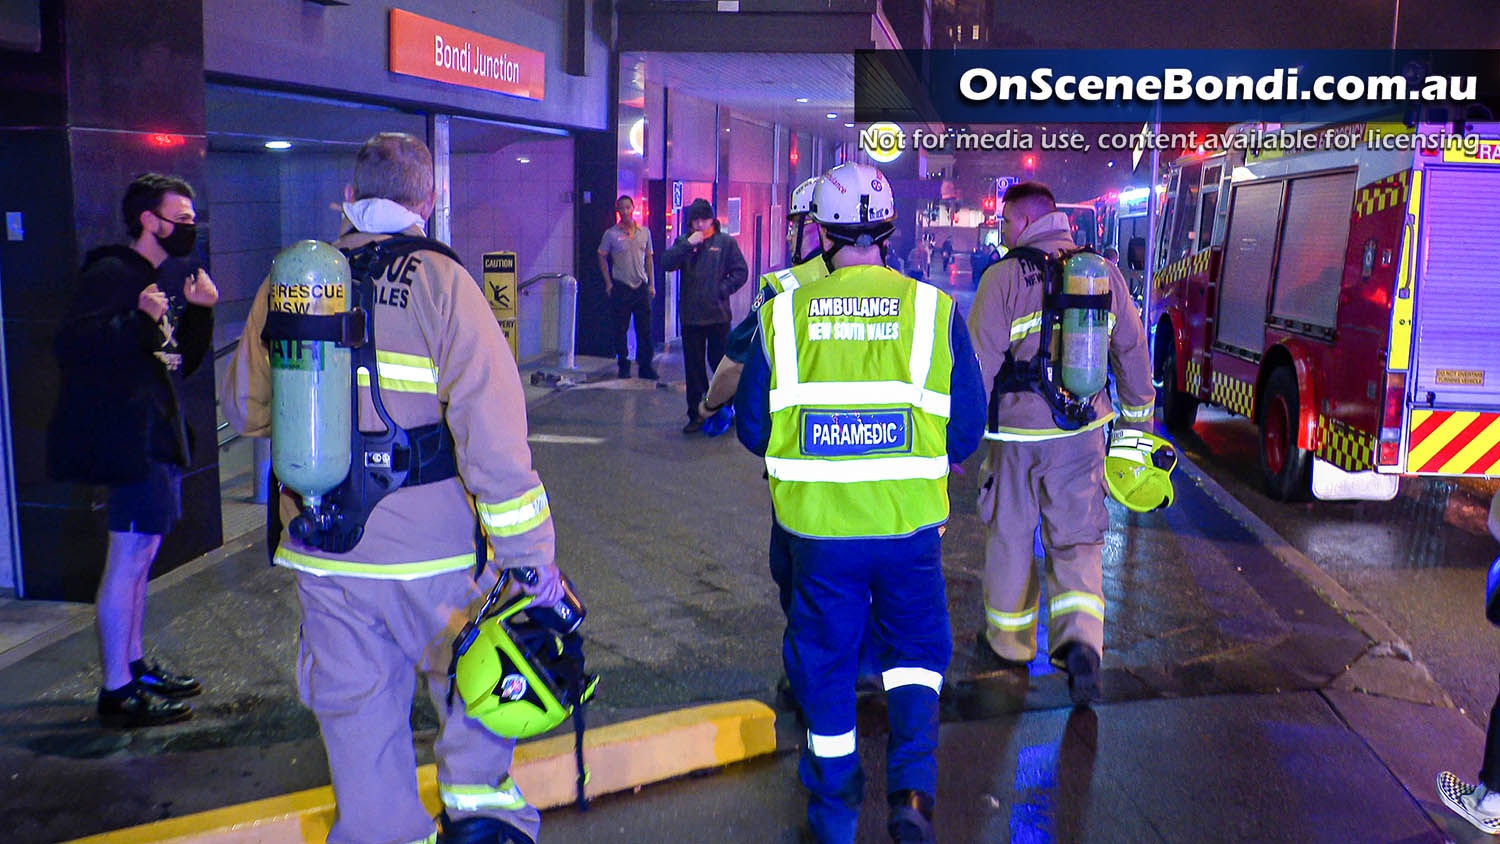 Fire shuts down Bondi Junction train station